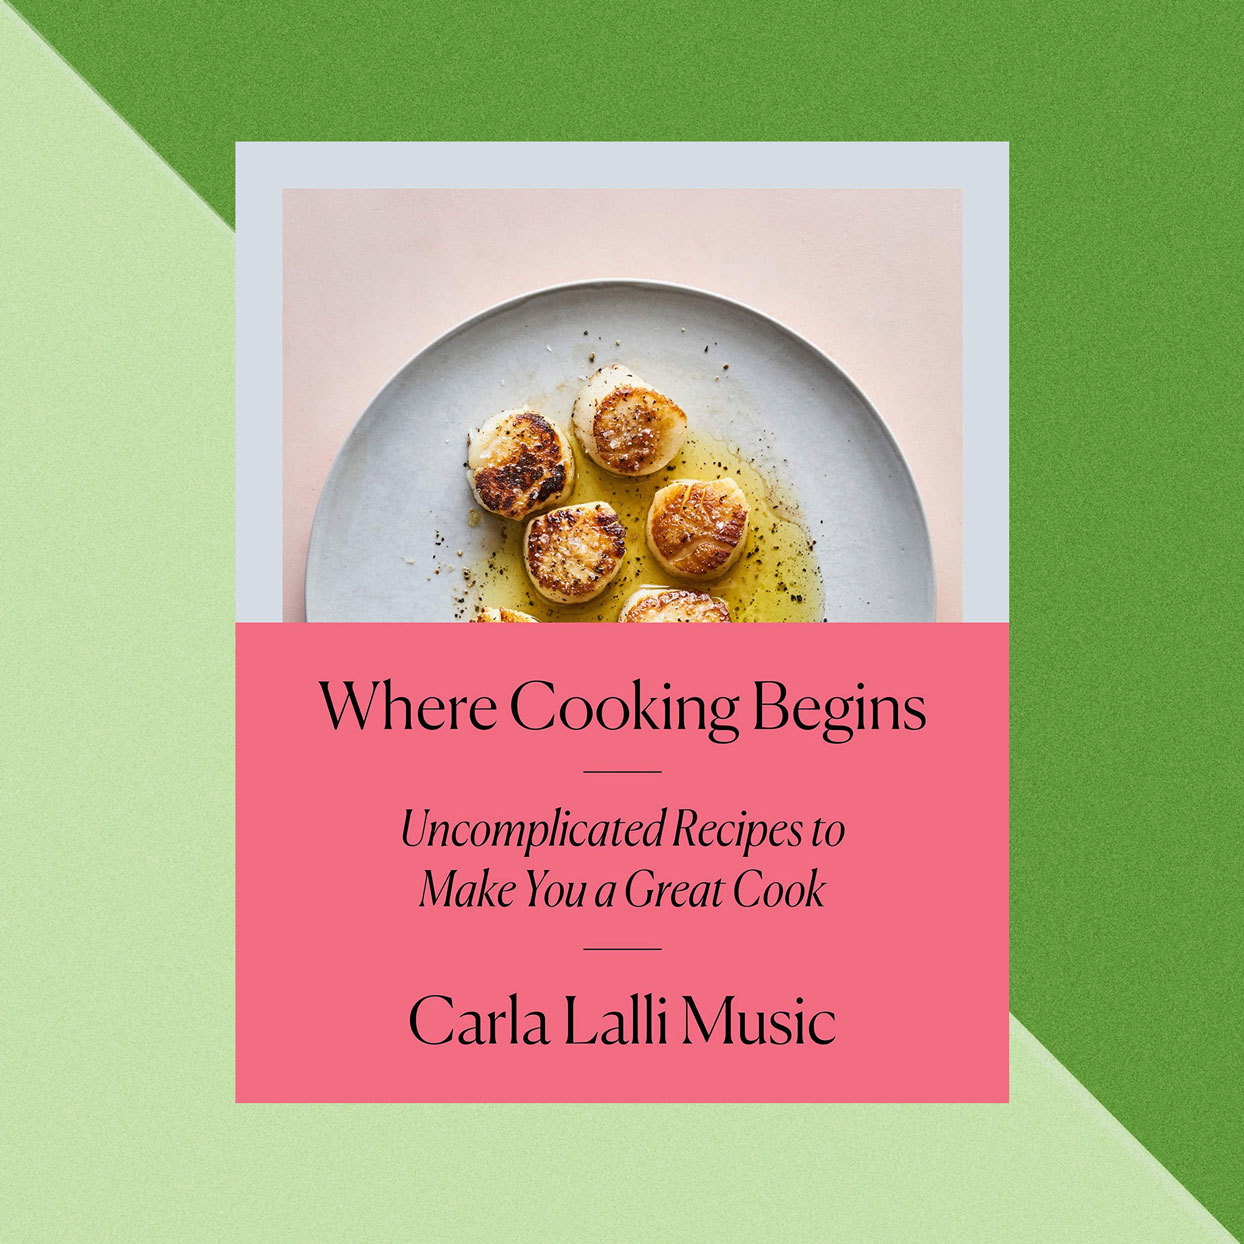 Where Cooking Begins - Uncomplicated Recipes to Make You a Great Cook - Carla Lalli Music book cover